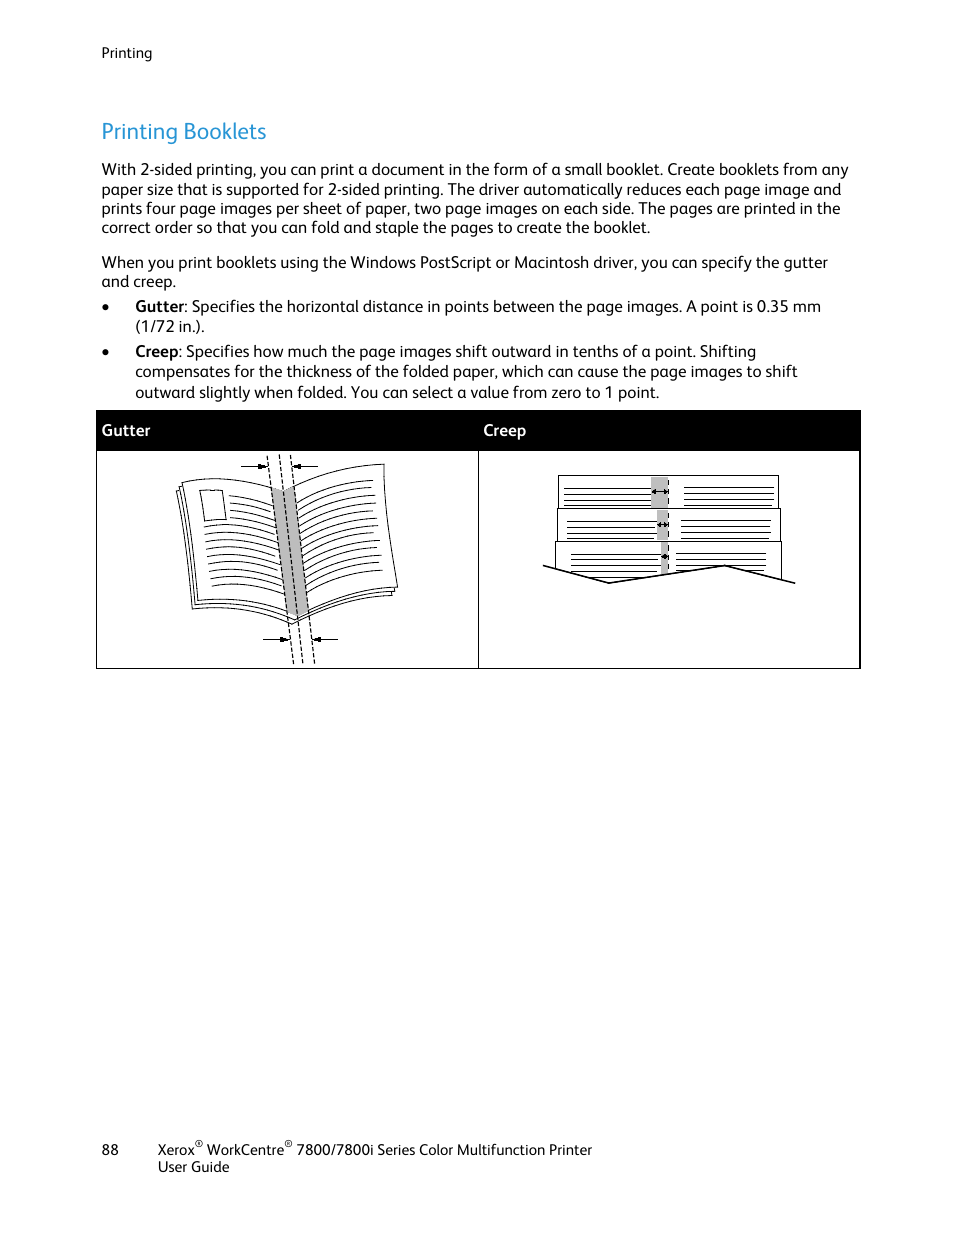 printing booklets xerox workcentre 7835ii user manual page 88 336